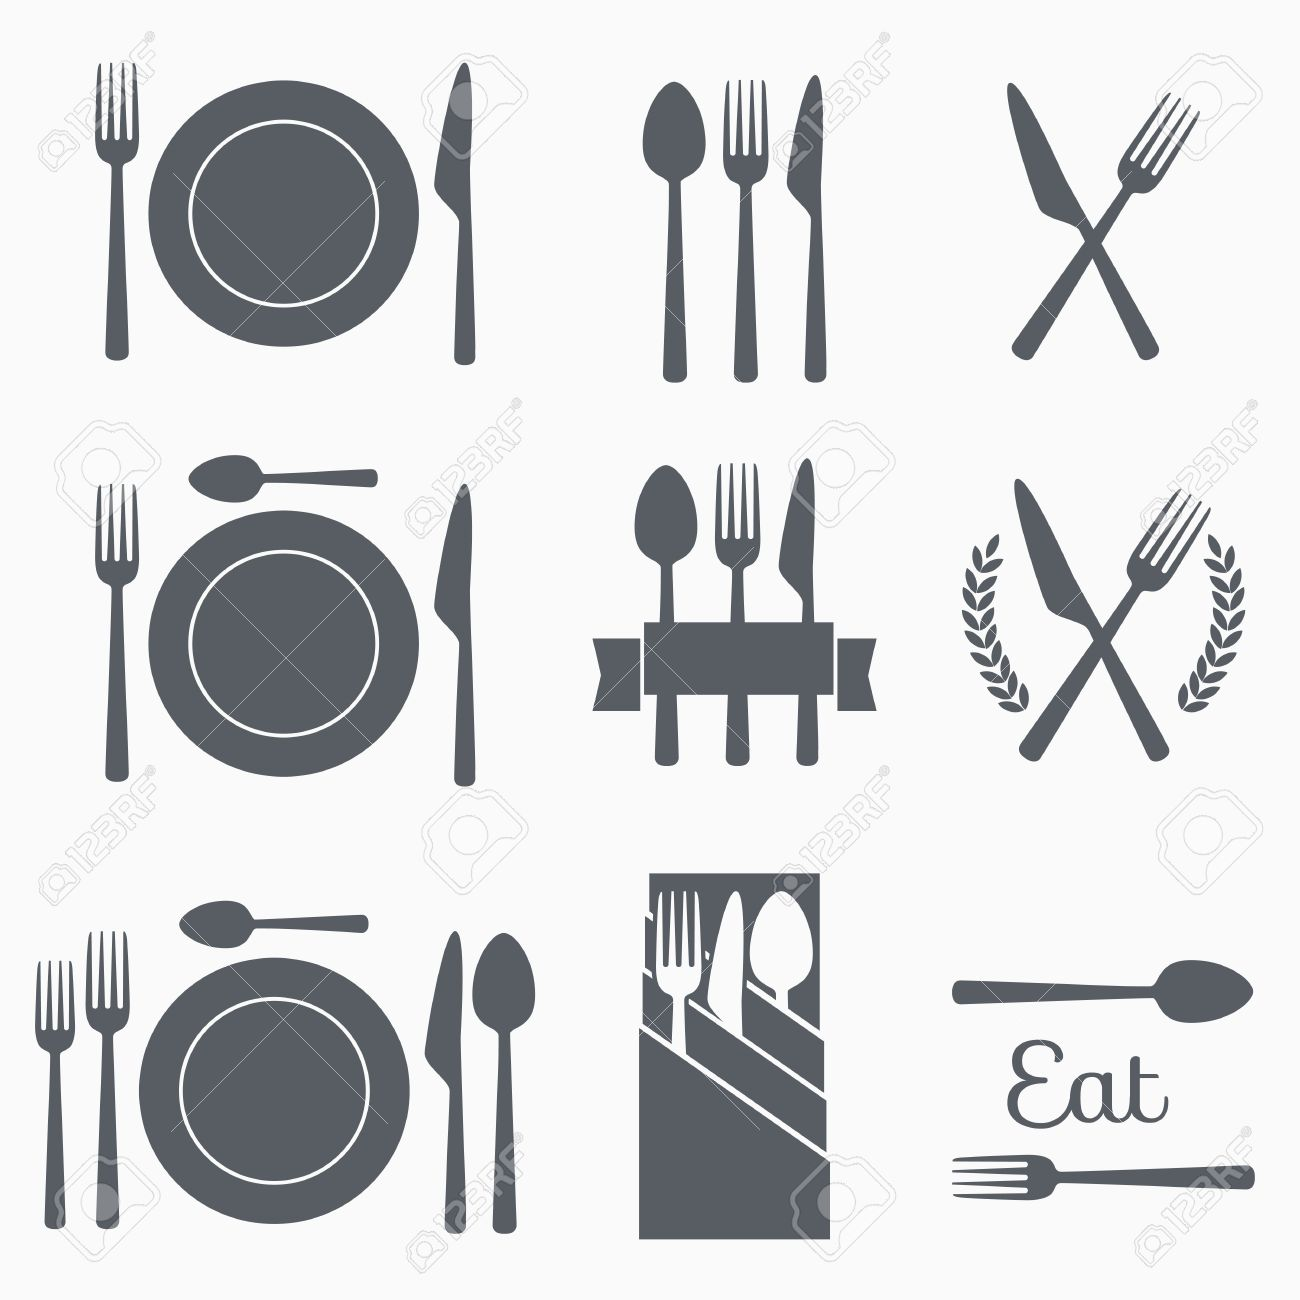 Set cutlery icon vector illustration. Black silhouette of fork, knife, spoon and plate. Table appointments. Menu - 58324323